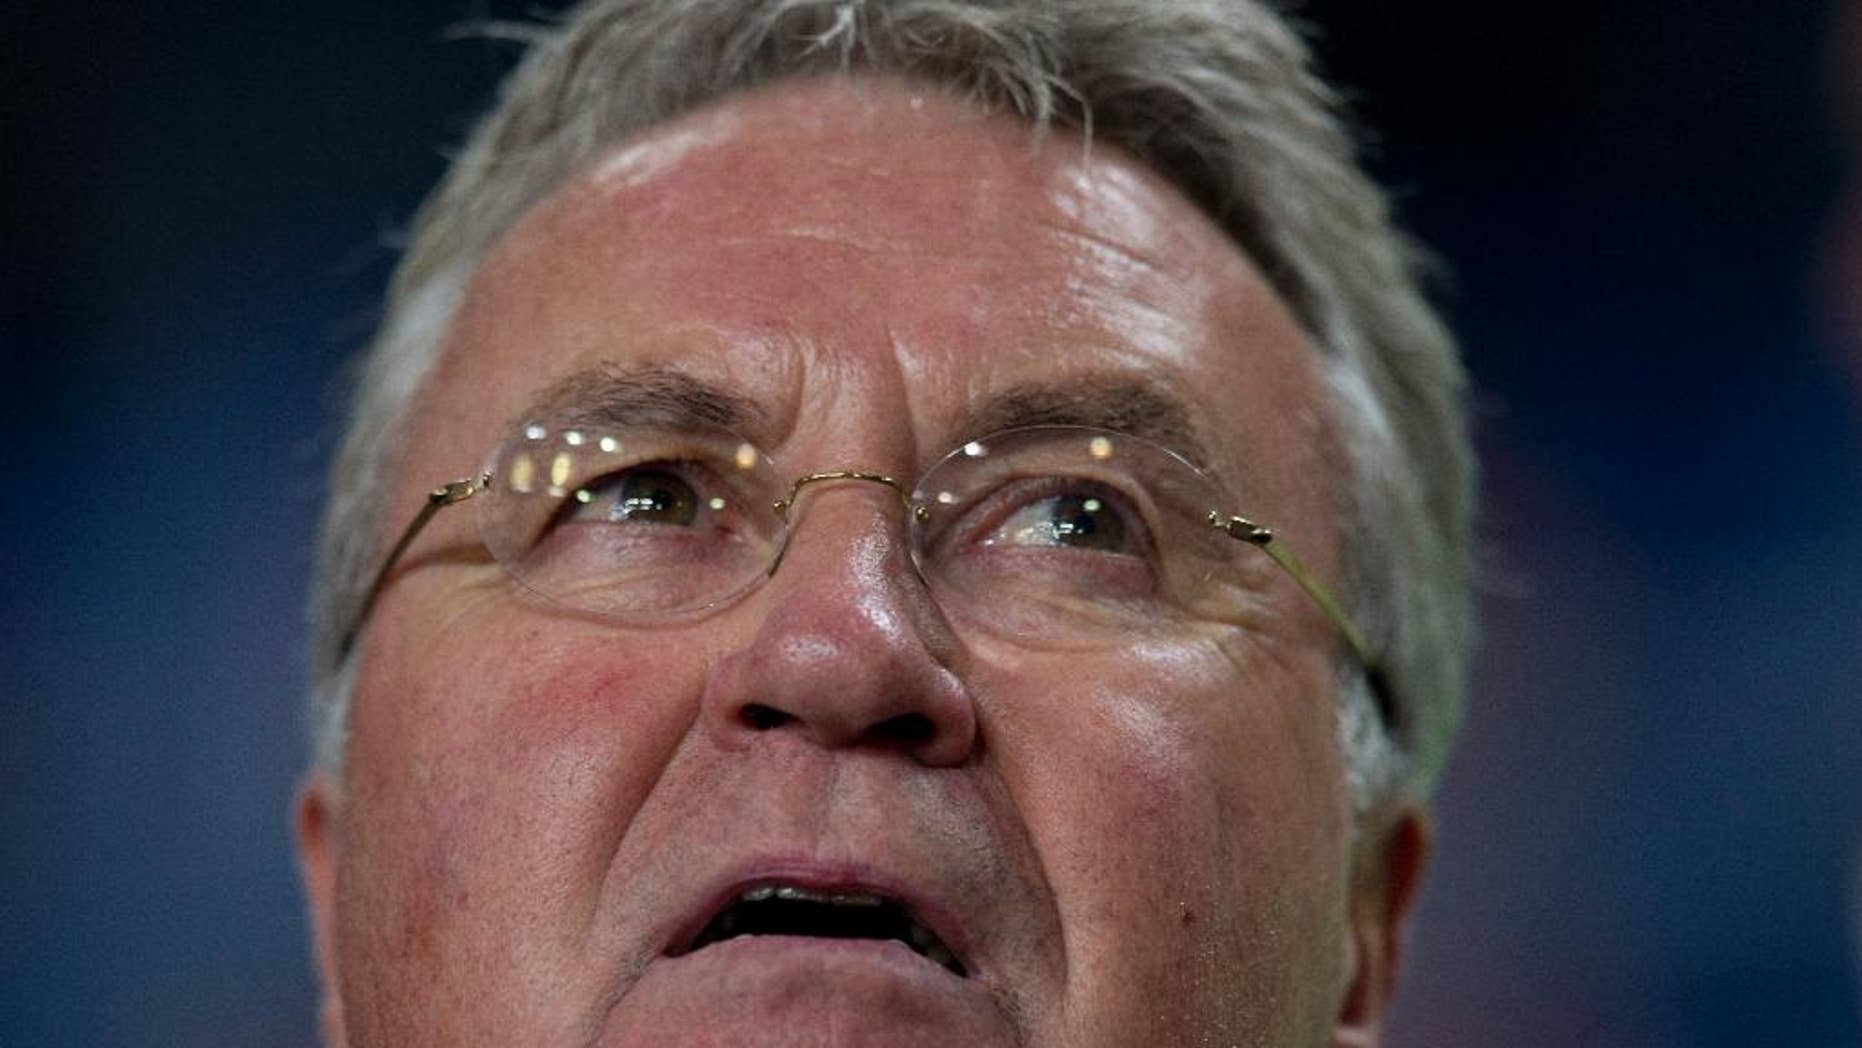 Netherlands head coach Guus Hiddink watches his players prior to the Euro 2016 qualifying match between The Netherlands and Kazakhstan at ArenA stadium in Amsterdam, Netherlands, Friday, Oct. 10, 2014. (AP Photo/Peter Dejong)